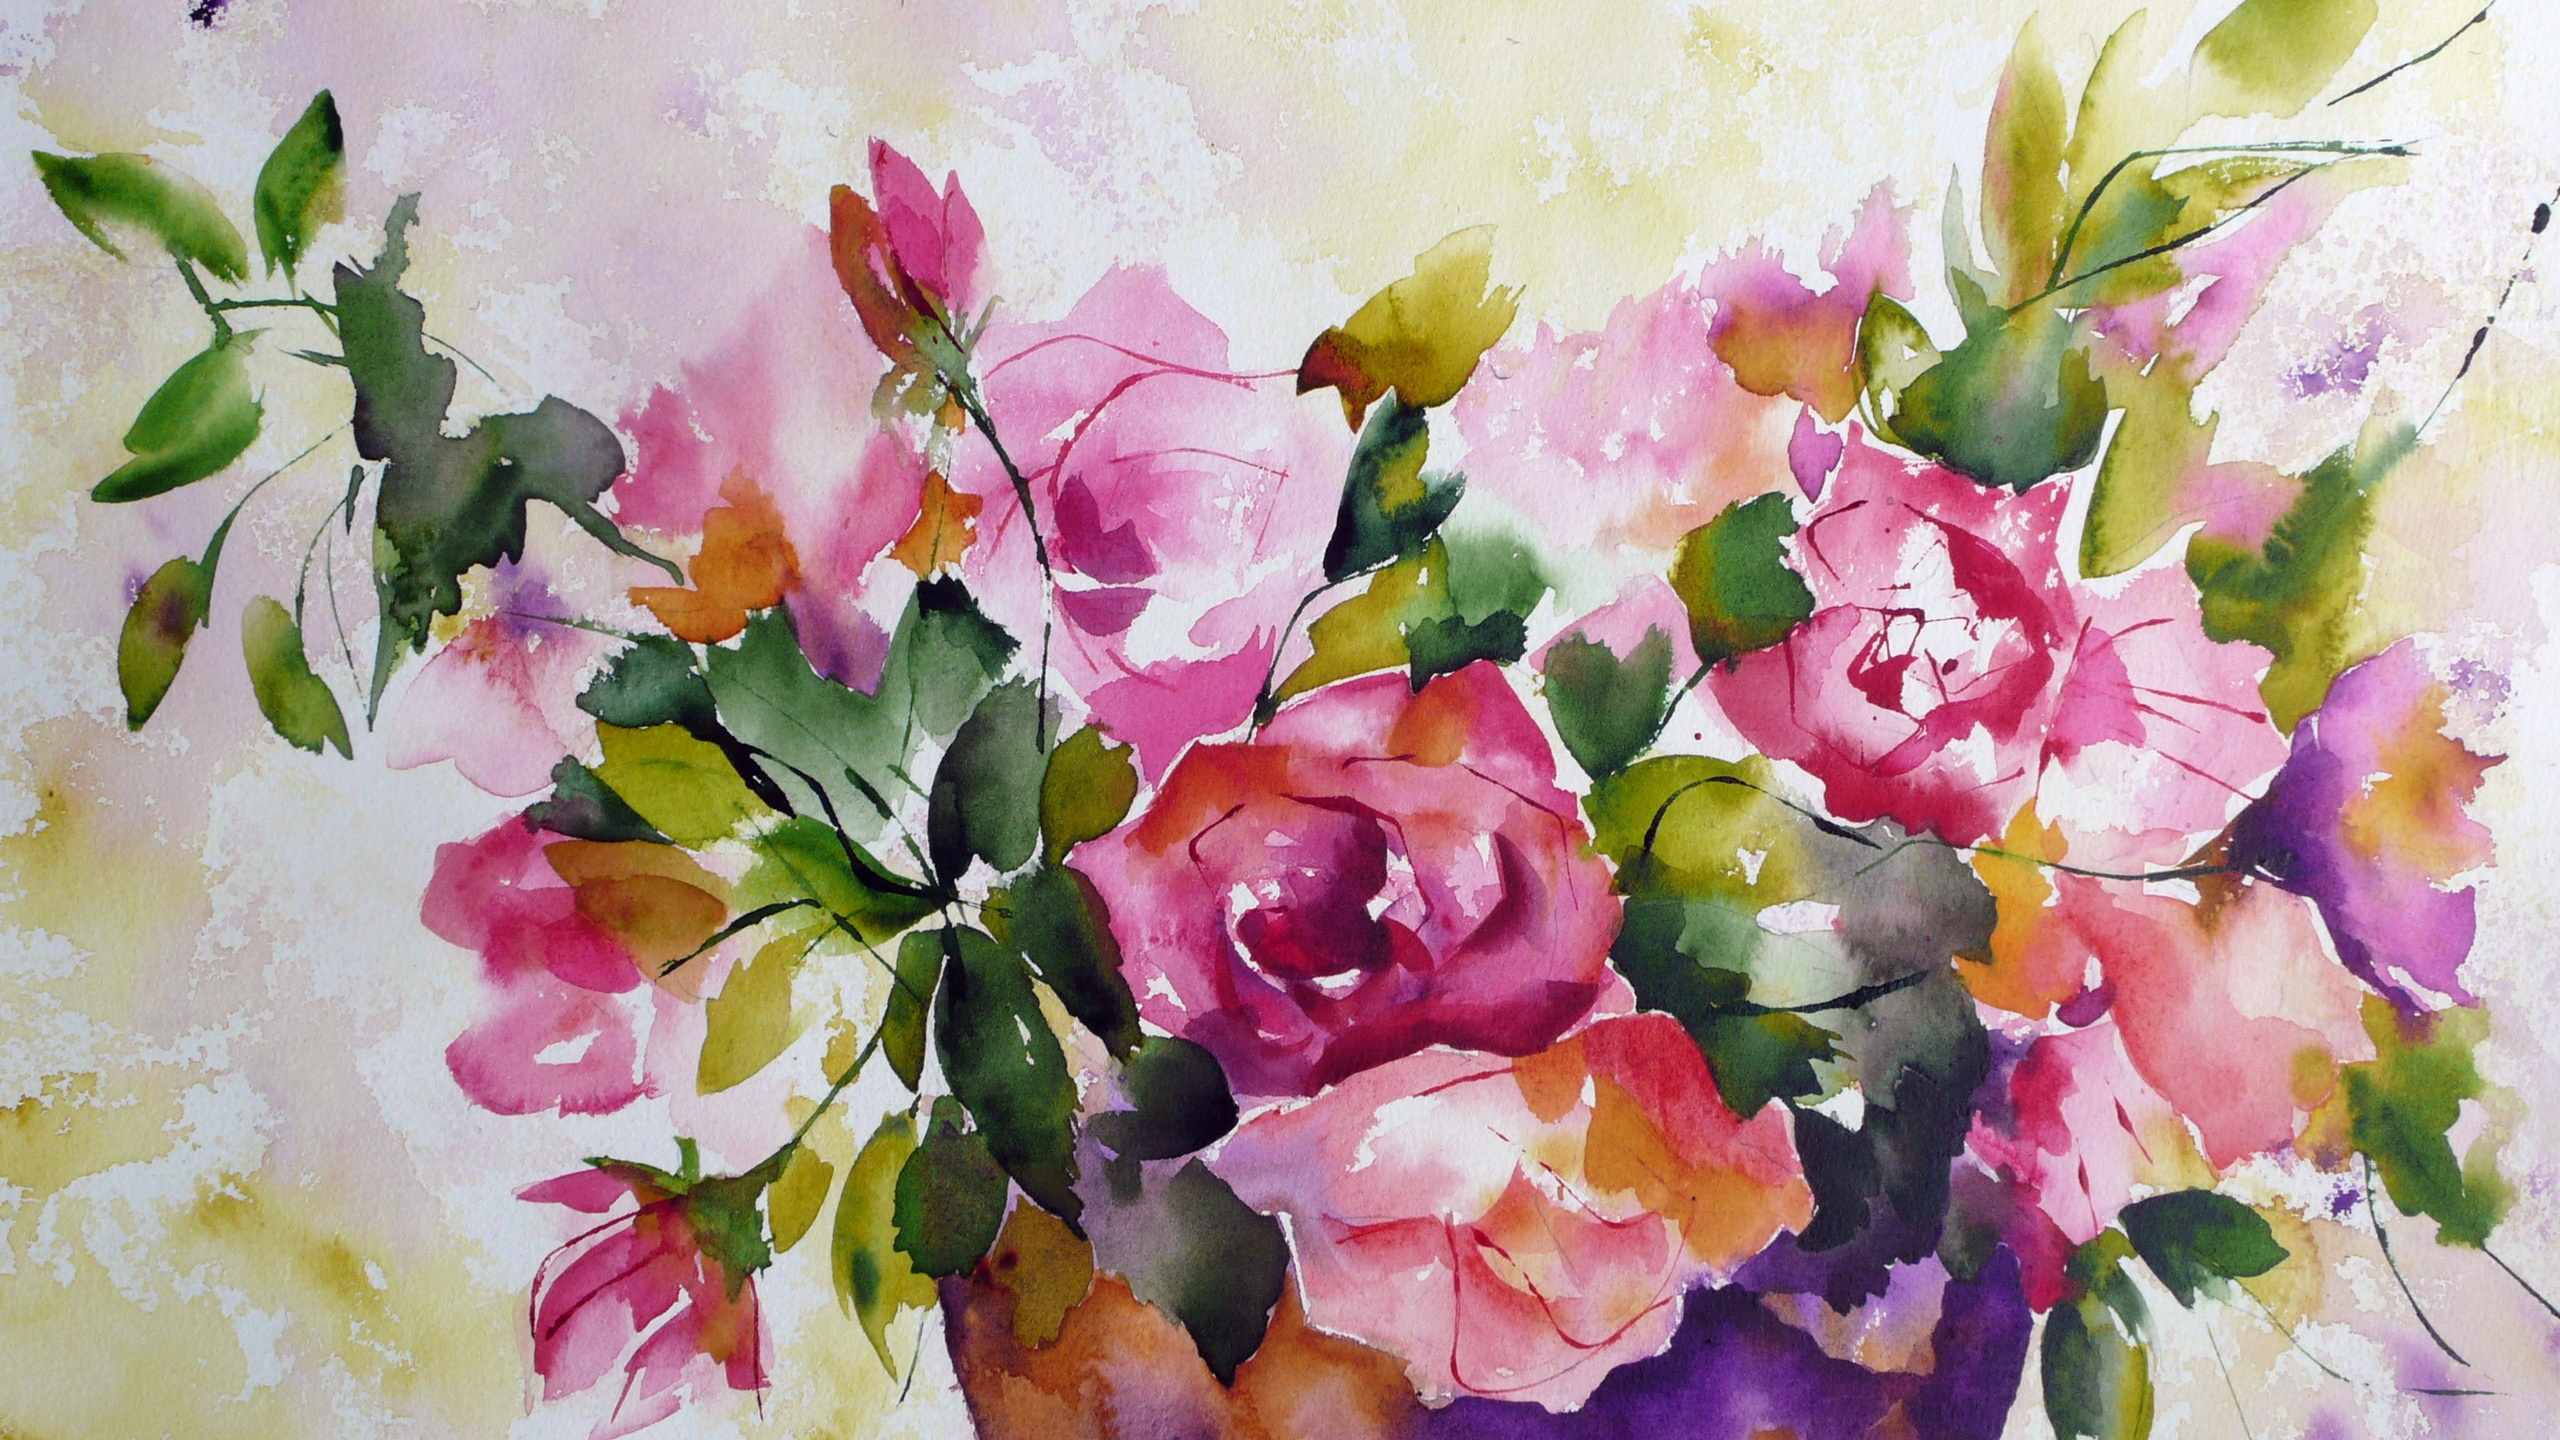 wallpaper watercolor painting of flowers 2560x1600 hd picture image